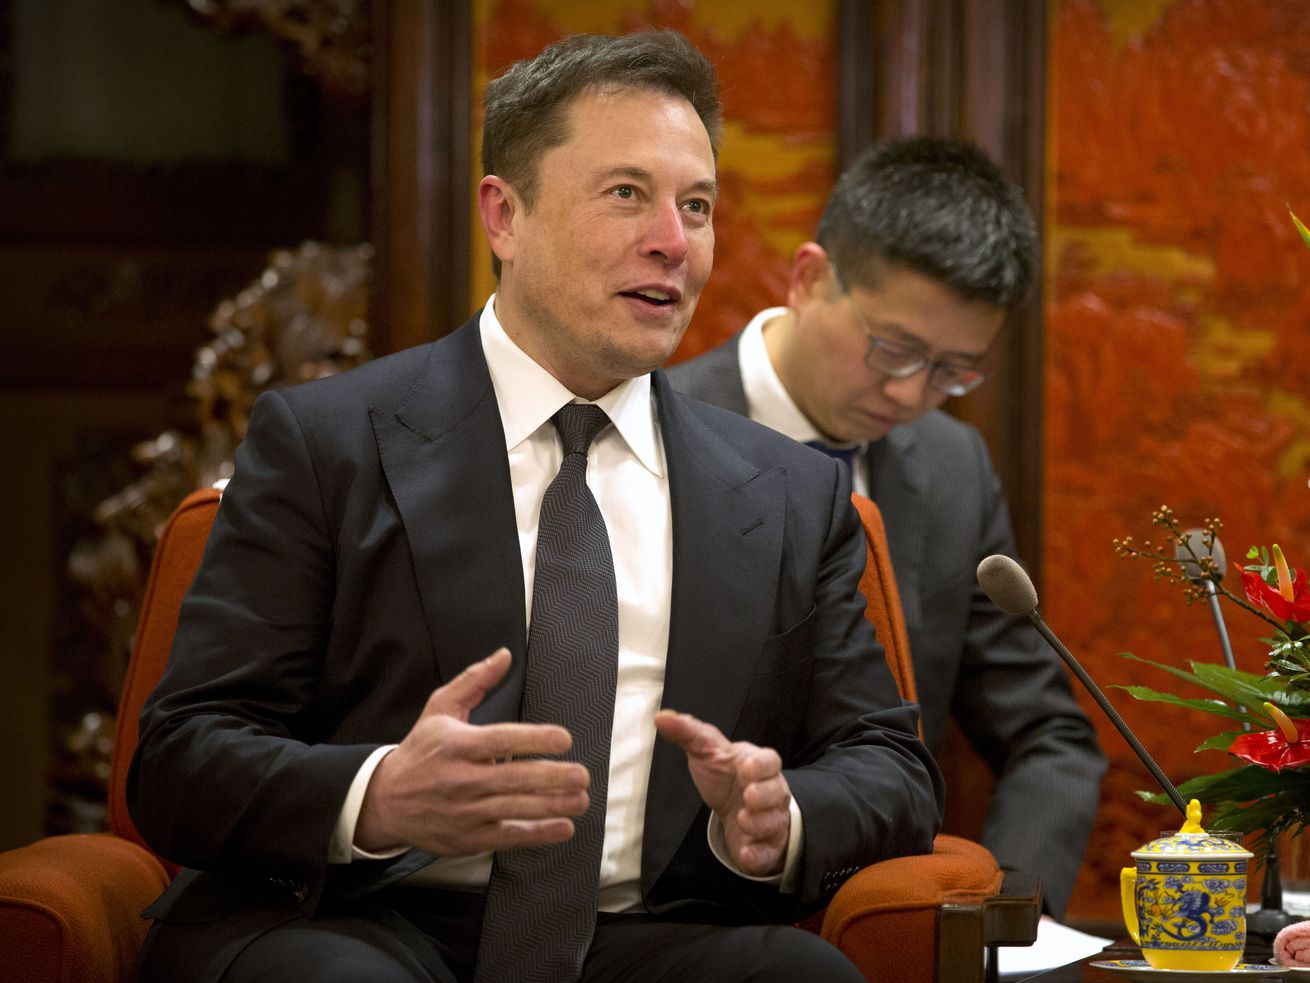 South African immigrant Elon Musk speaks in China, where a significant portion of H-1B applications originate.